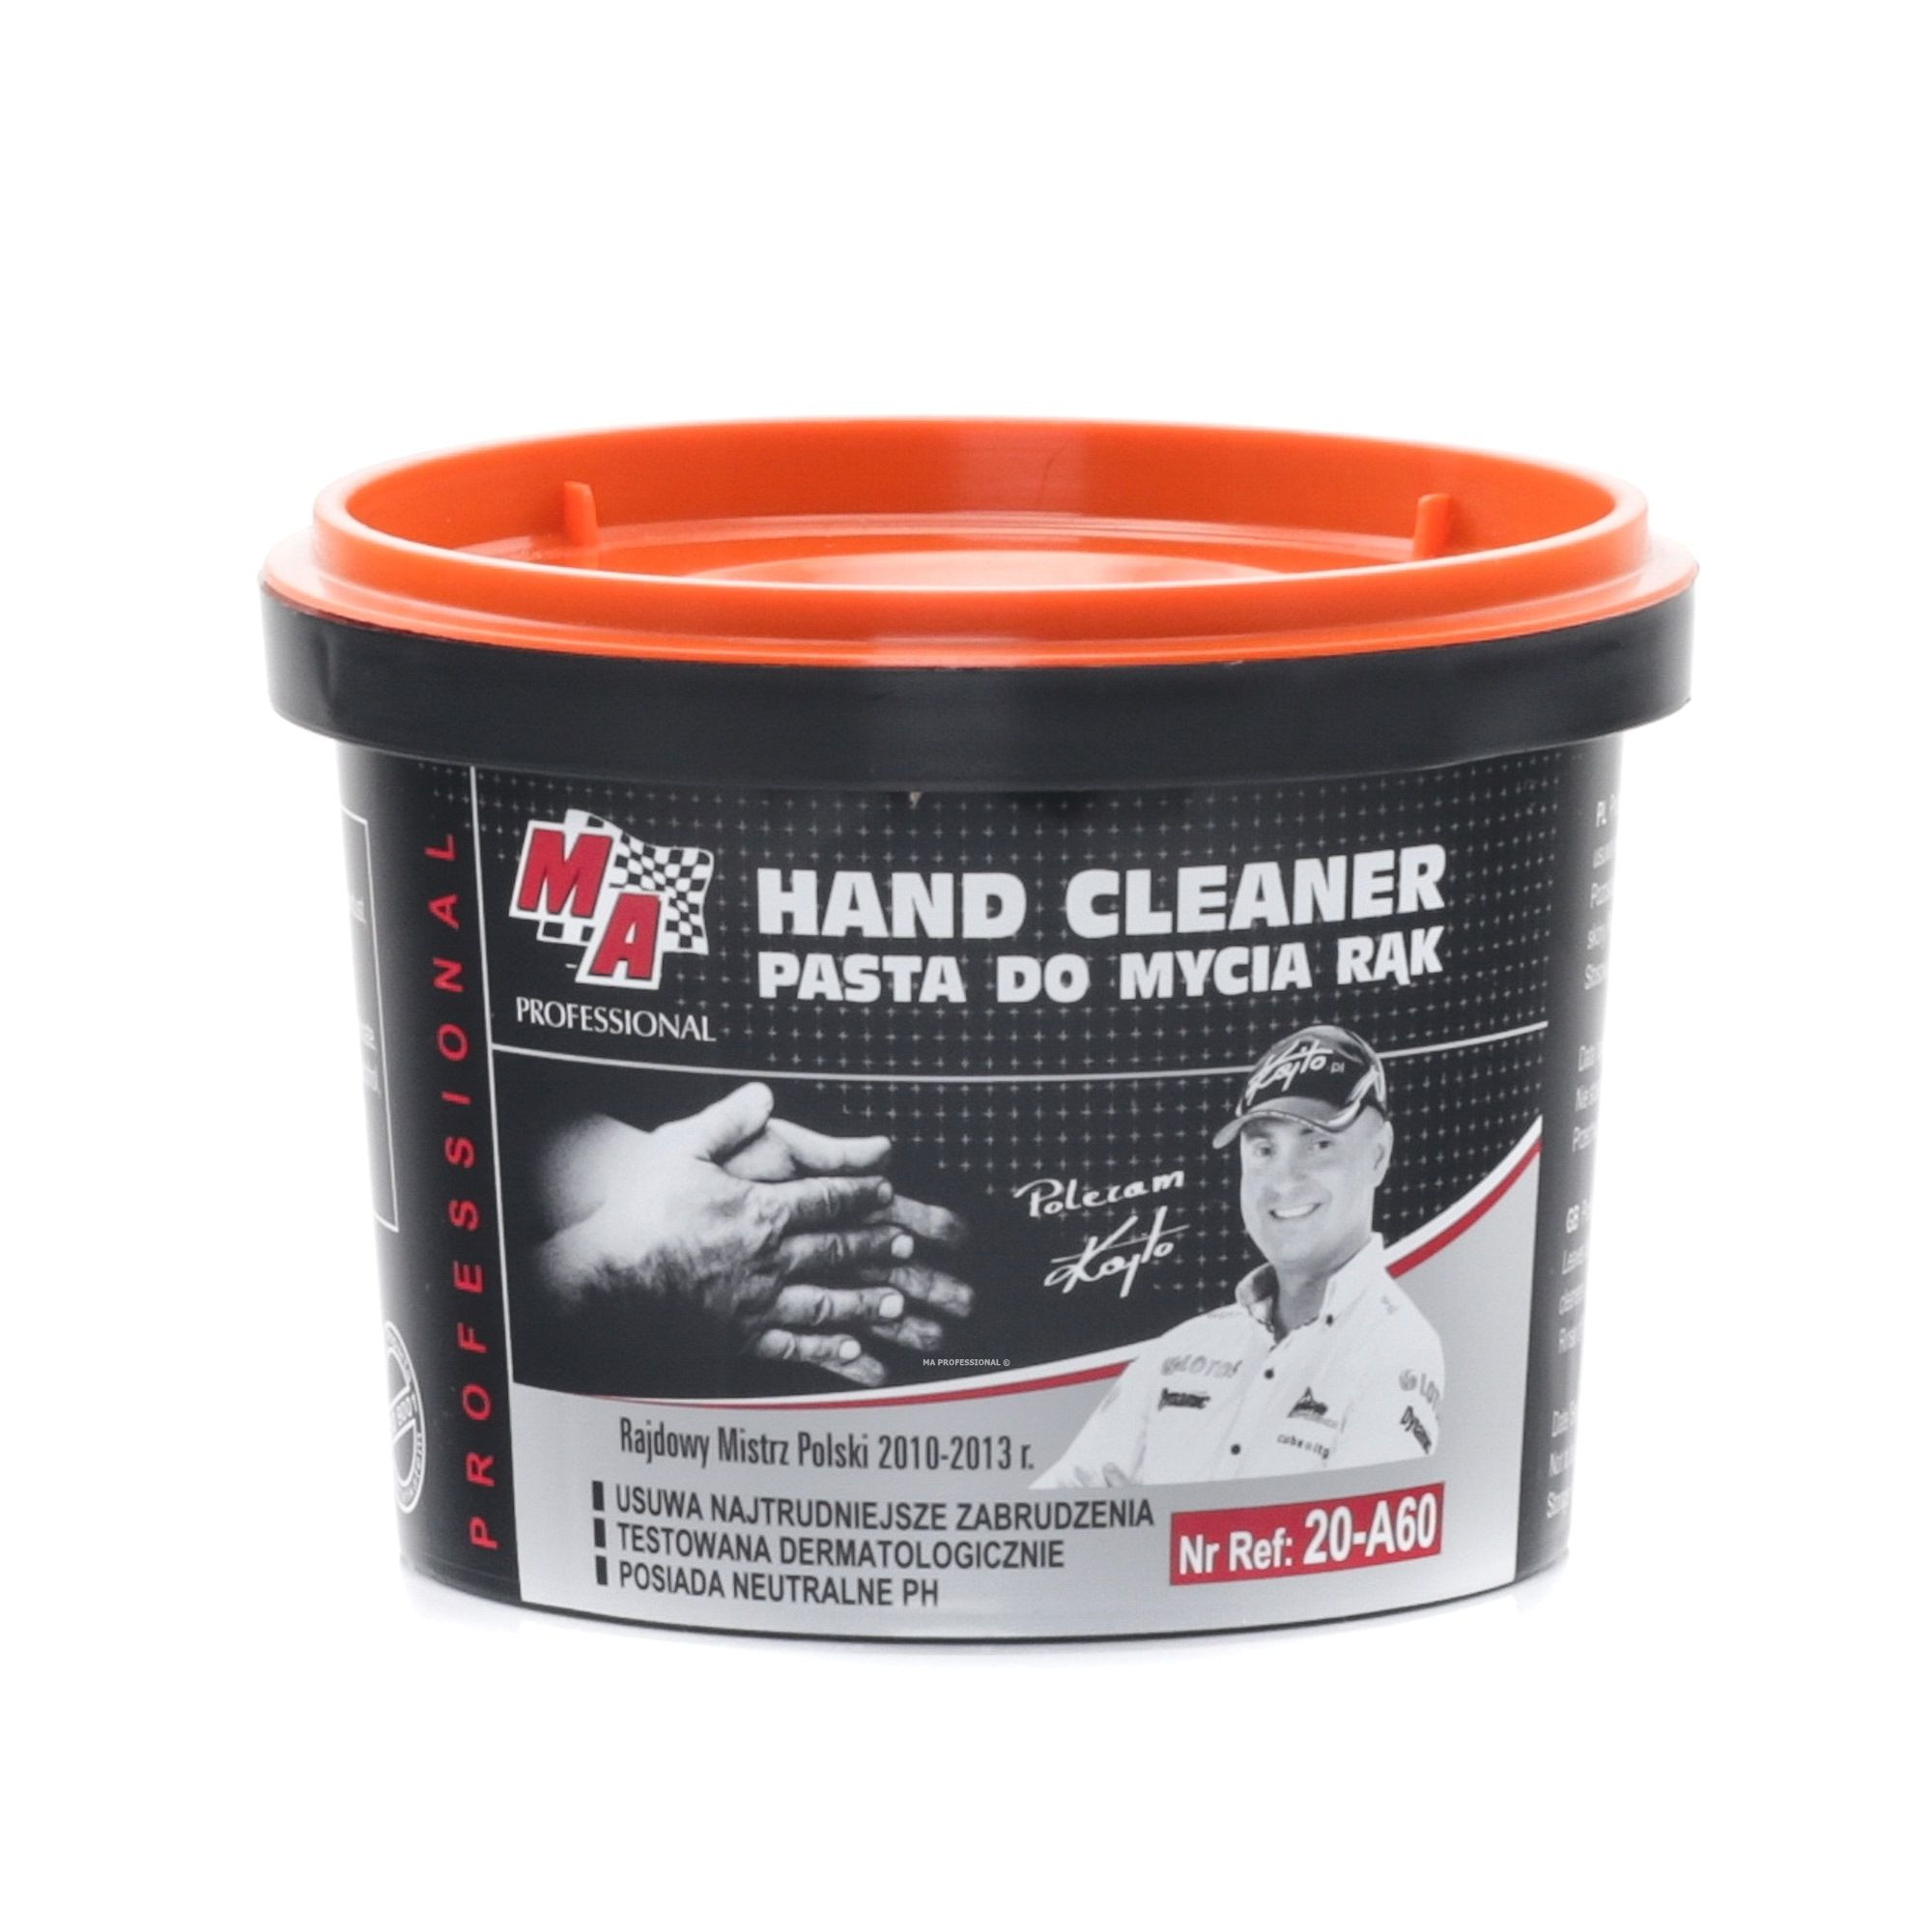 Hand Cleaners MA PROFESSIONAL 20-A60 rating